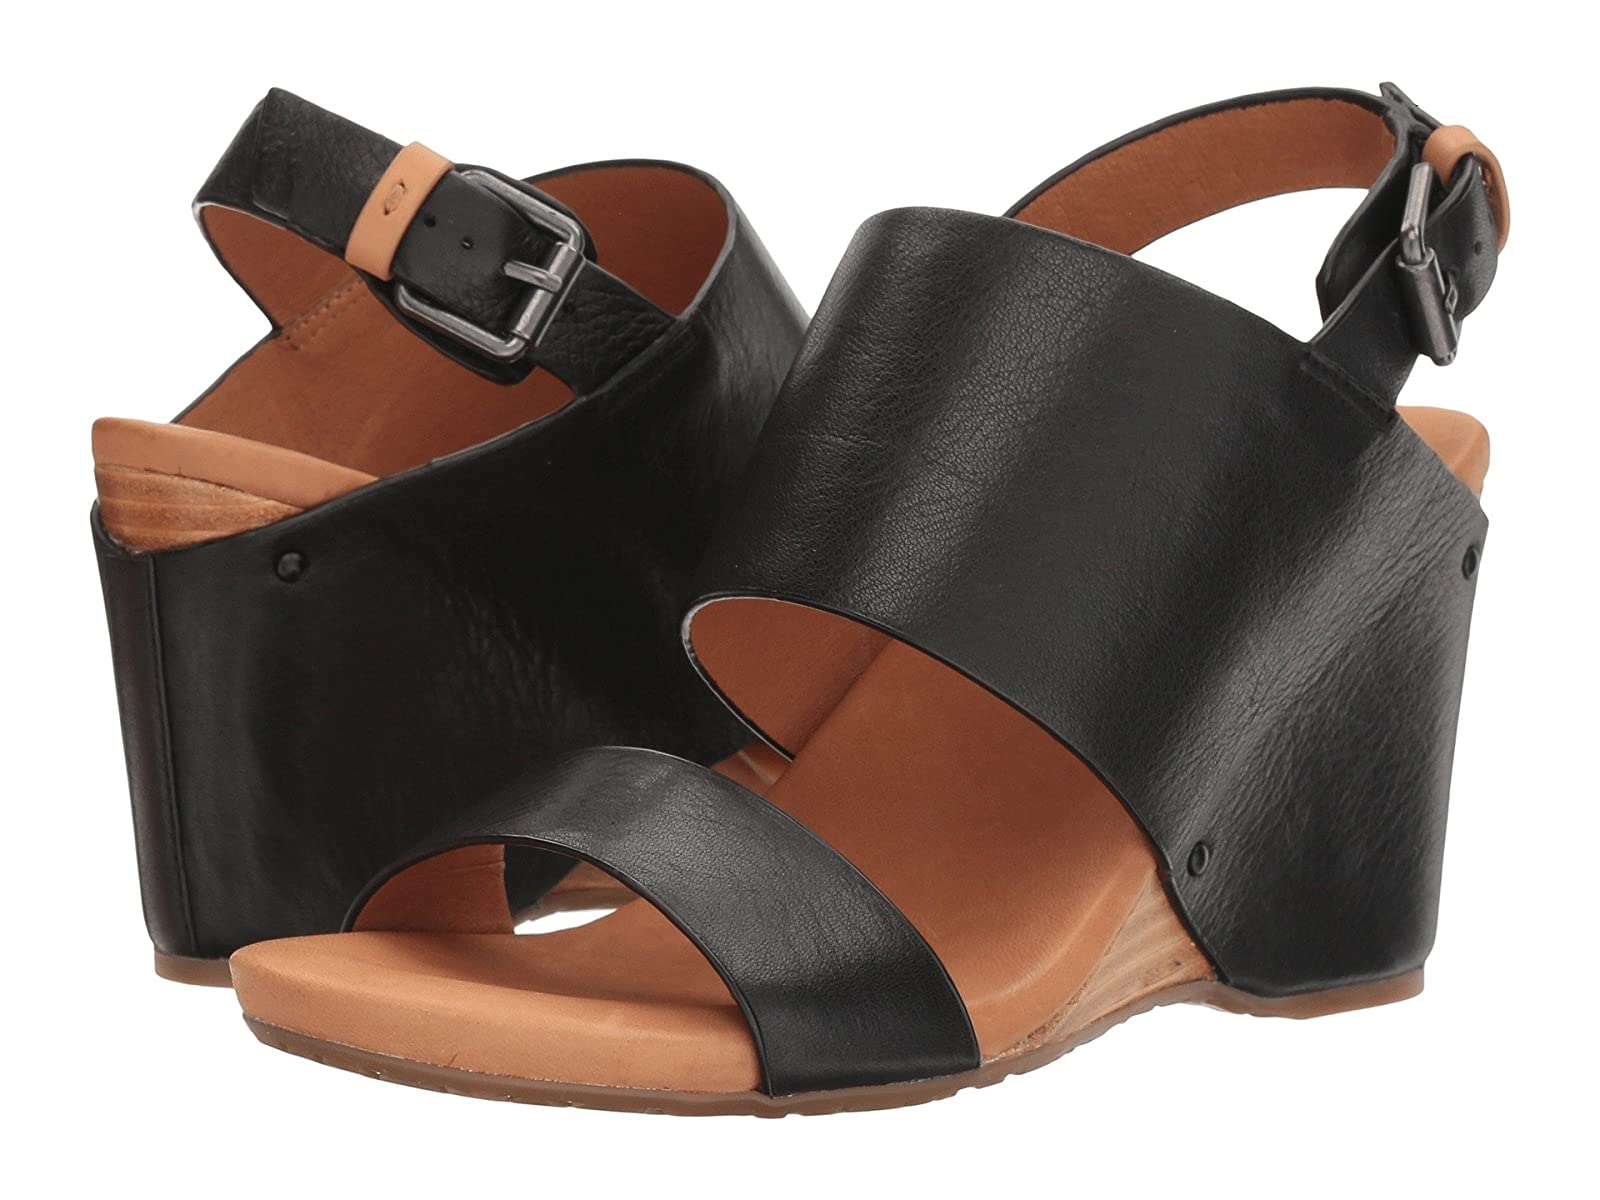 Gentle Souls by Kenneth Cole InkaCheap and distinctive eye-catching shoes